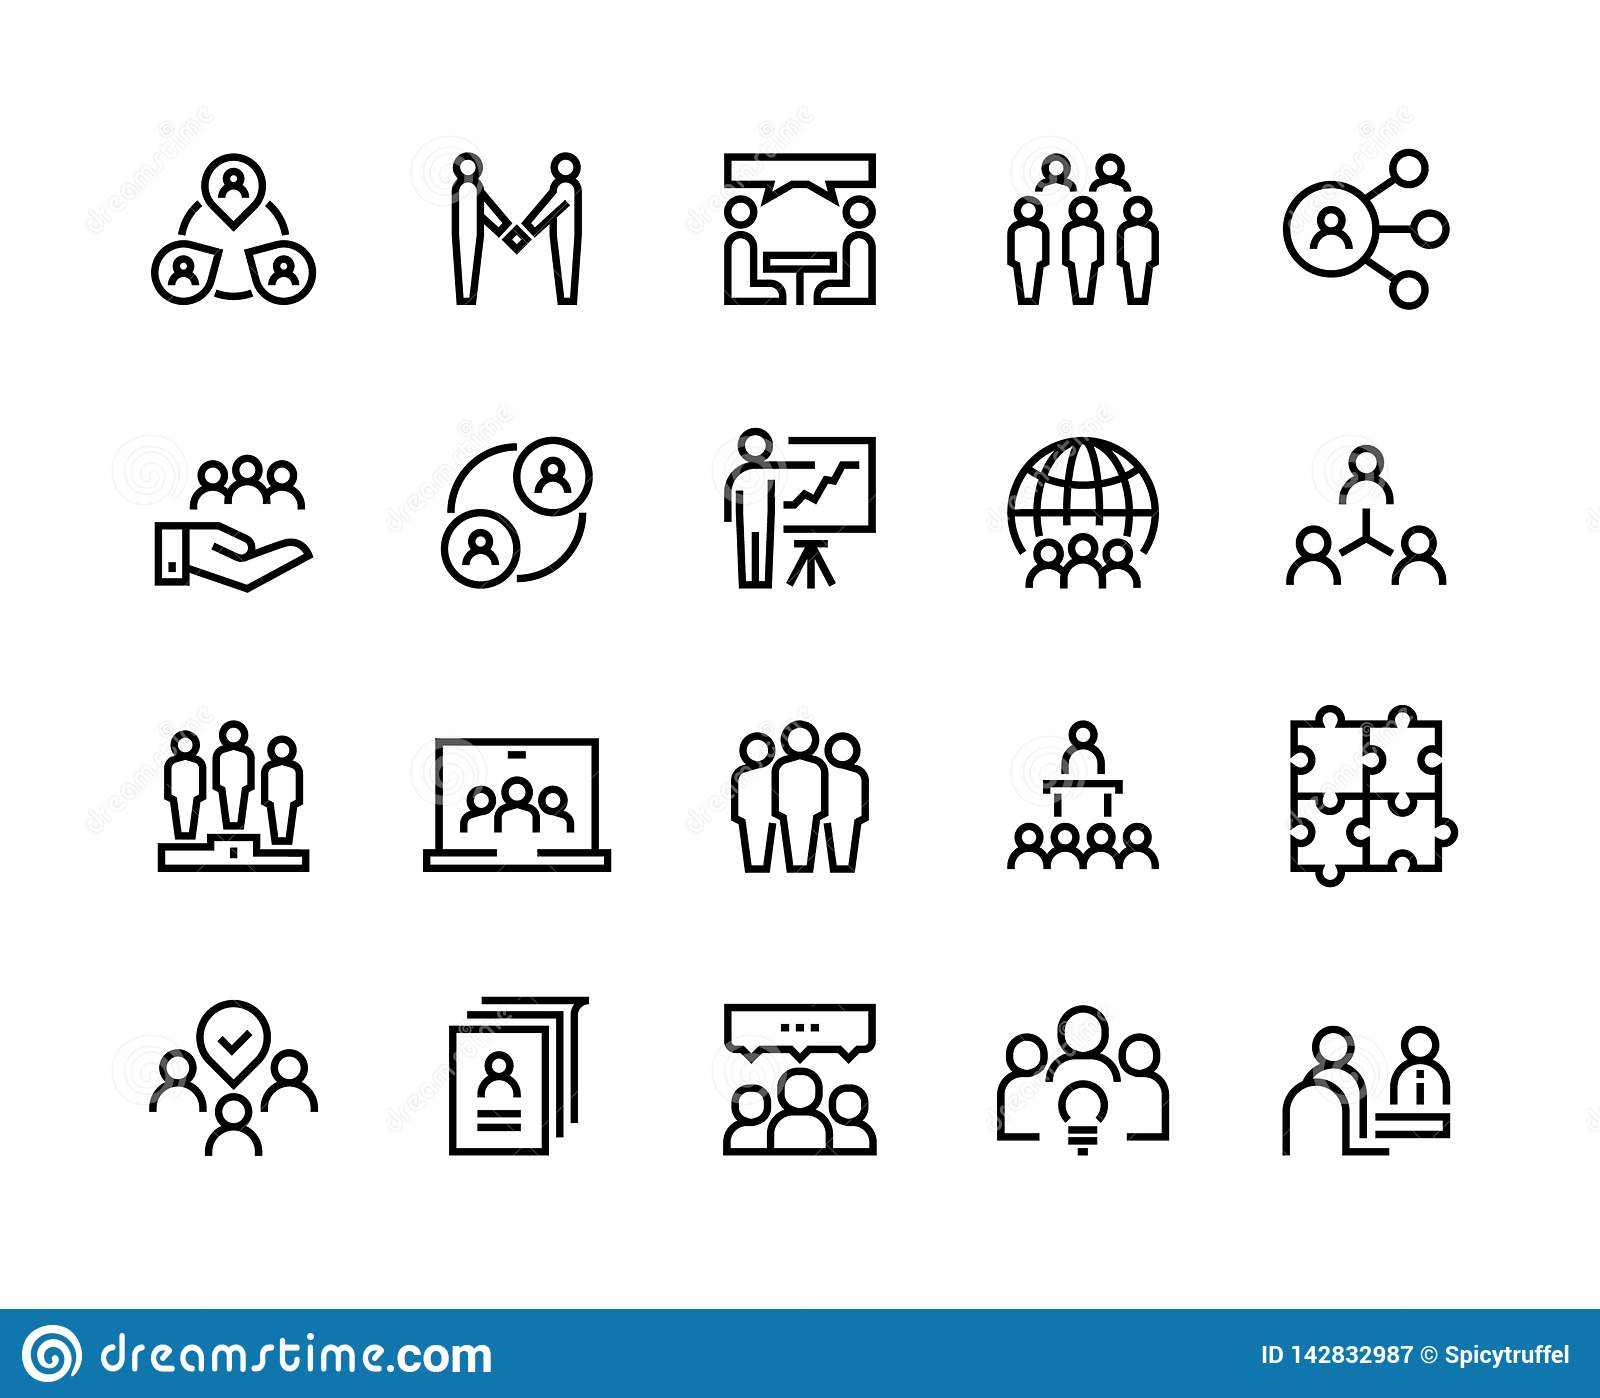 Team work line icons. Business person group work human support teamwork leadership working together. Vector employee